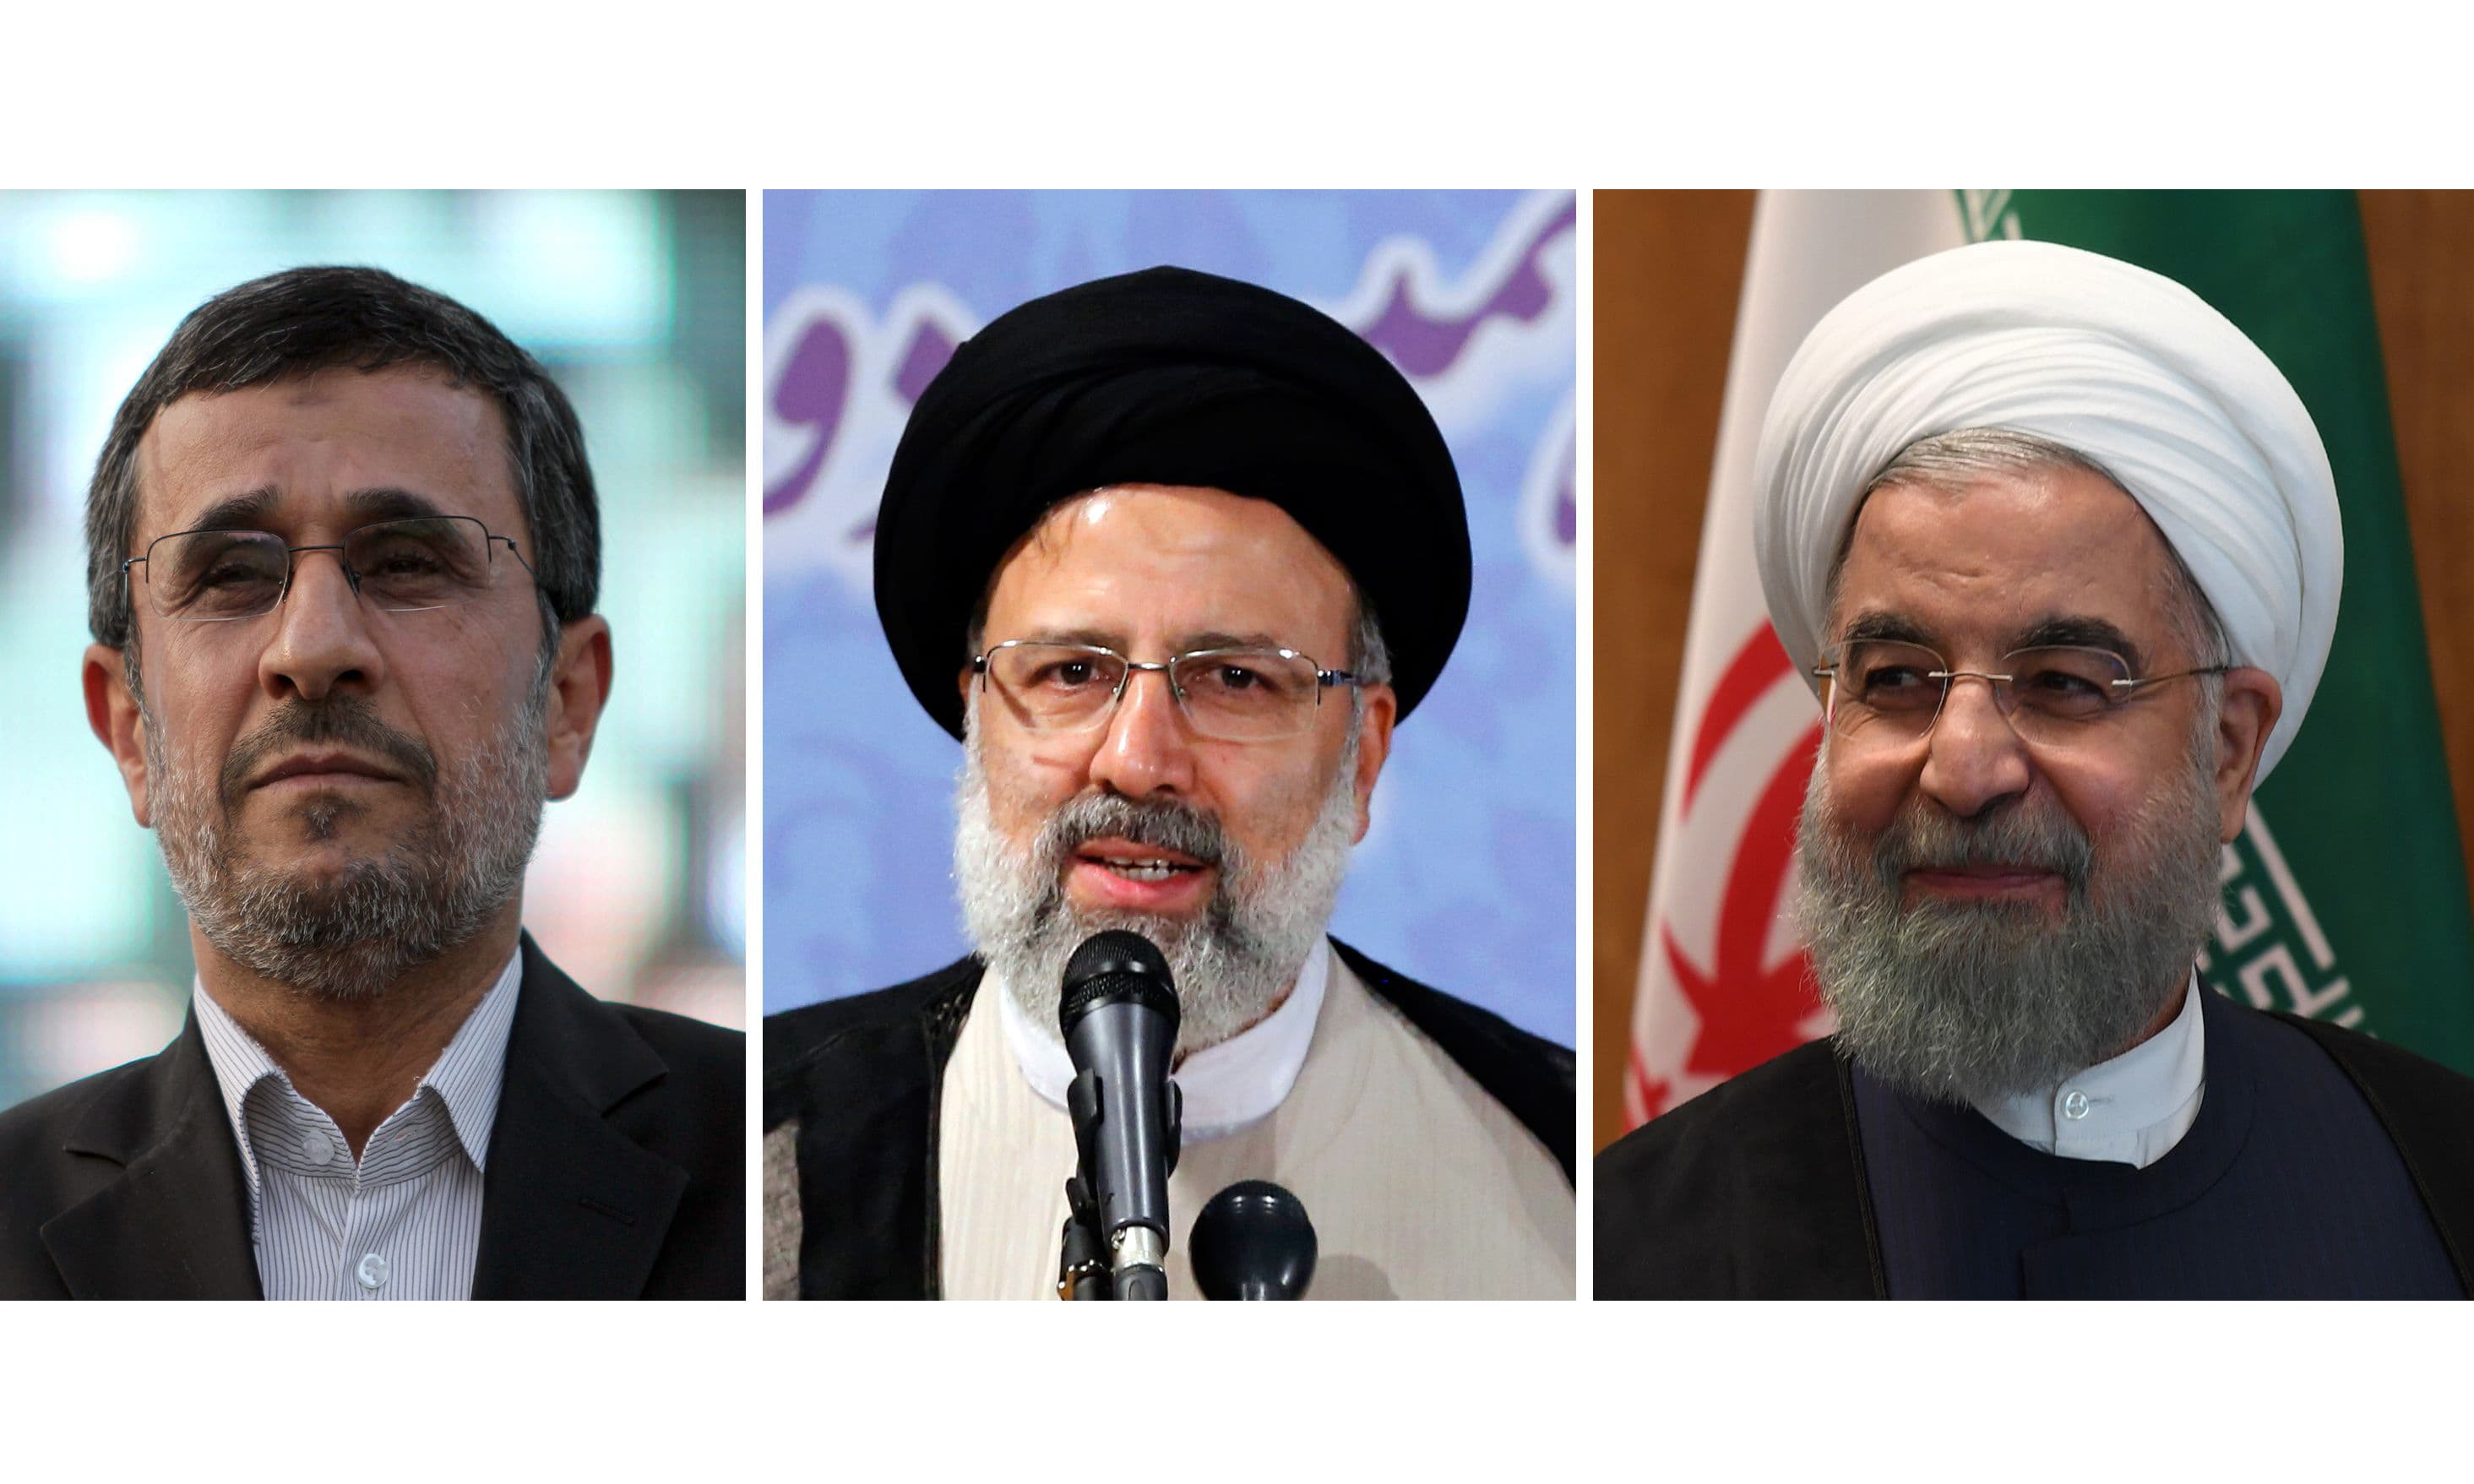 The factions that will decide Iran's protest response